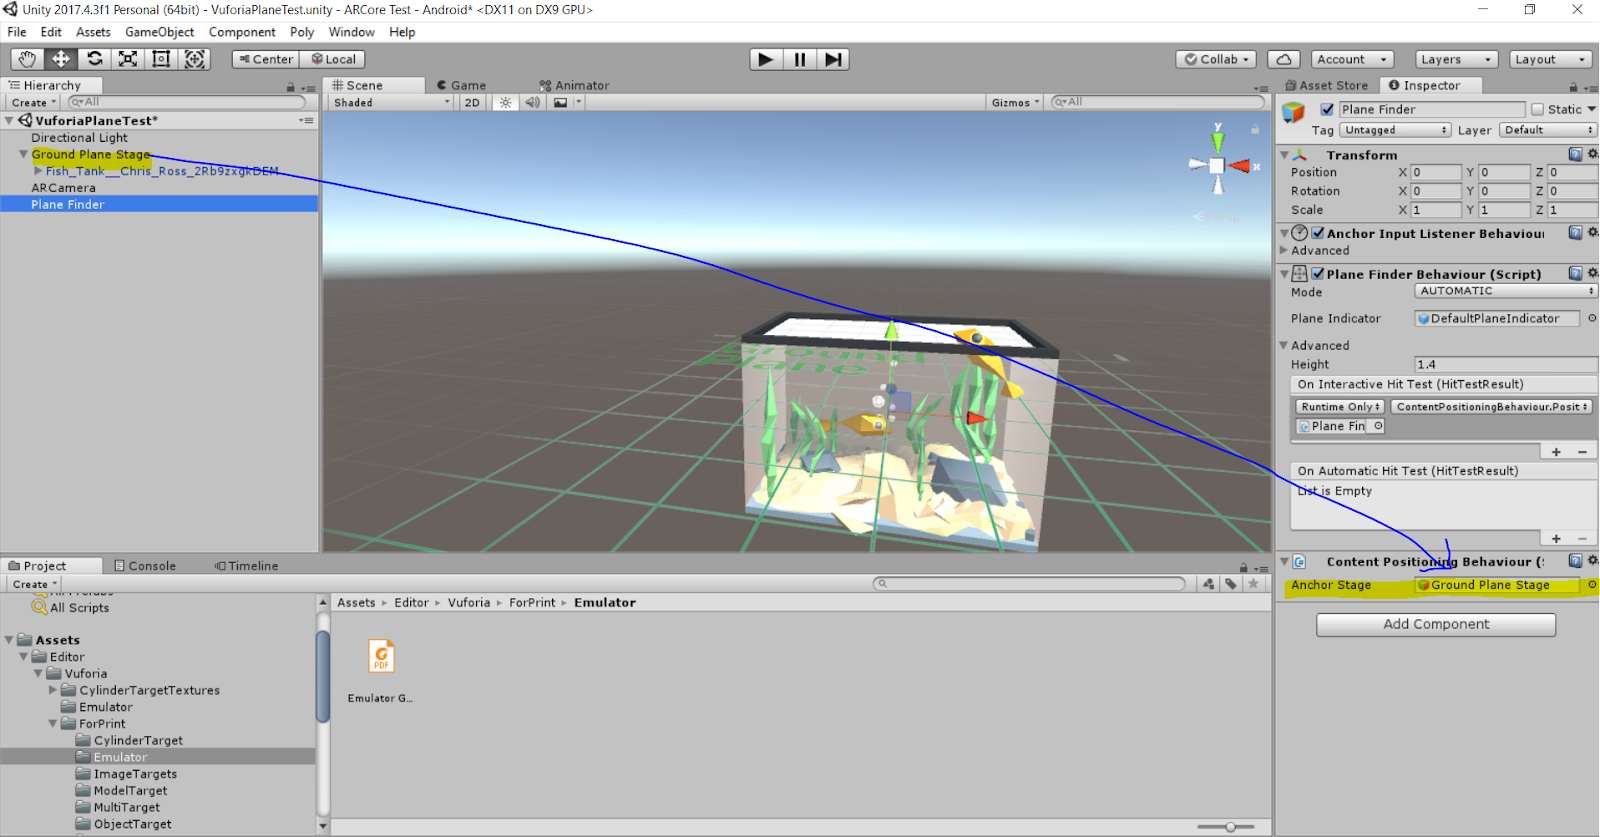 Learning's: Getting Started with Vuforia Ground Plane and Unity